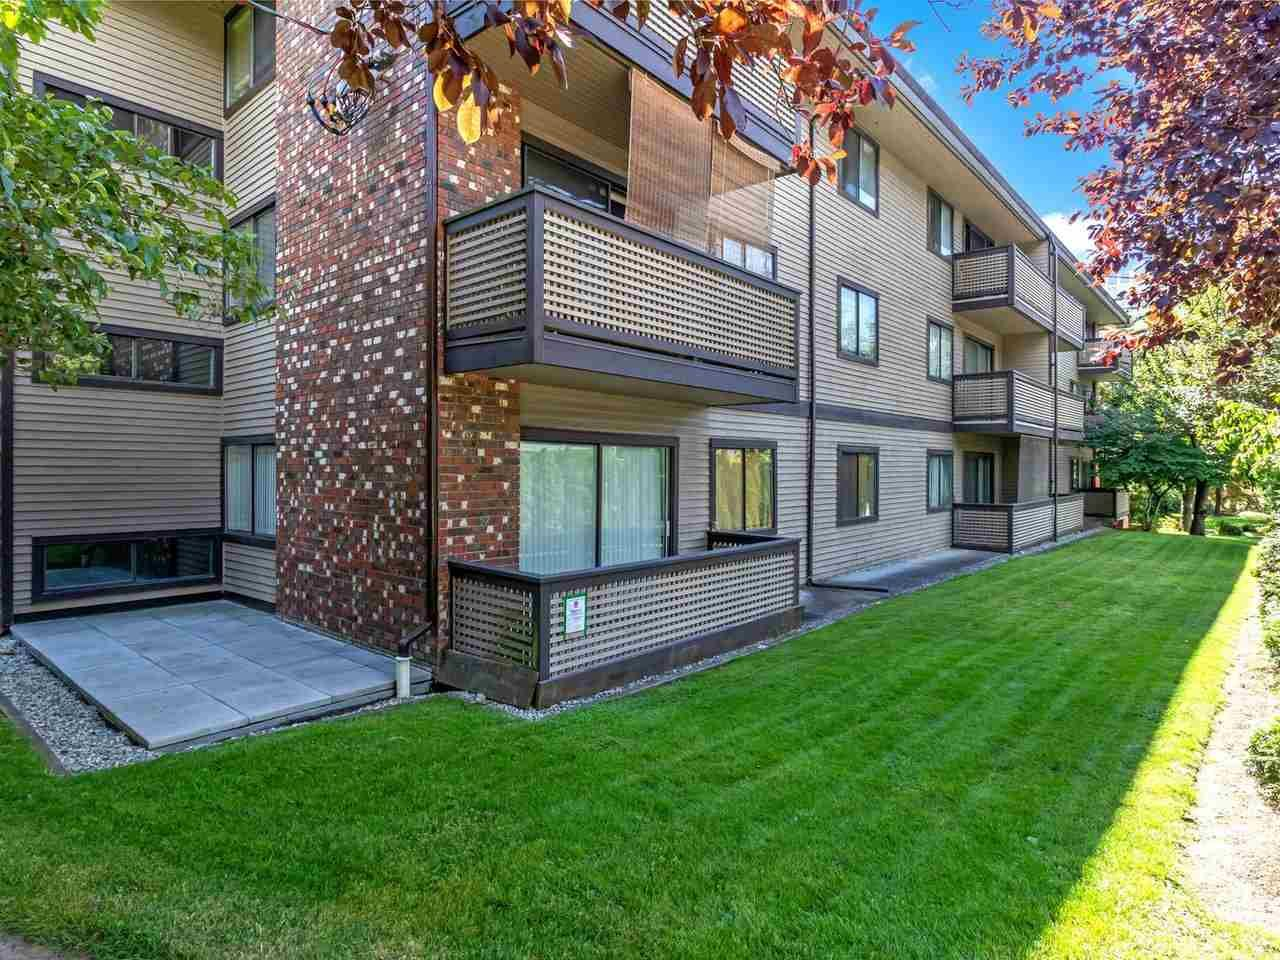 """Main Photo: 104 535 BLUE MOUNTAIN Street in Coquitlam: Central Coquitlam Condo for sale in """"Regal Court"""" : MLS®# R2561452"""